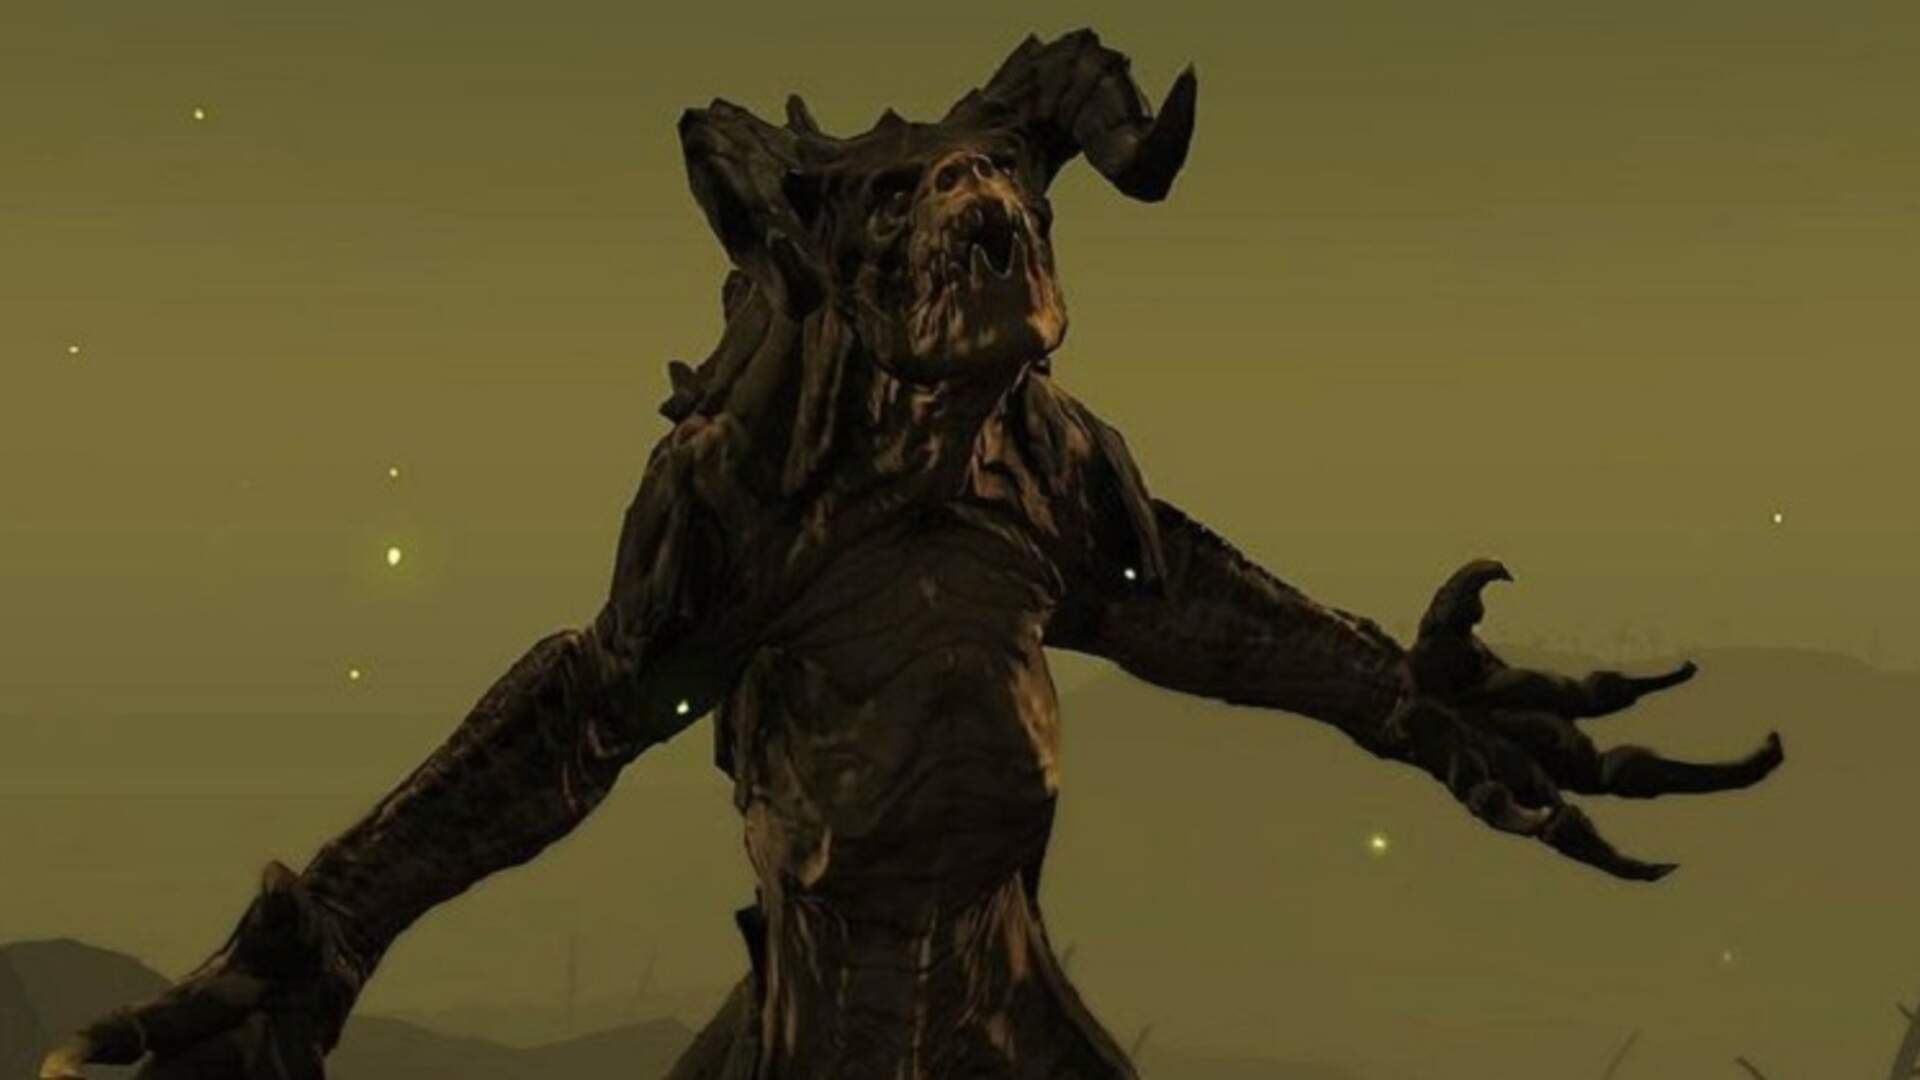 Fallout 4: How to Kill a Deathclaw